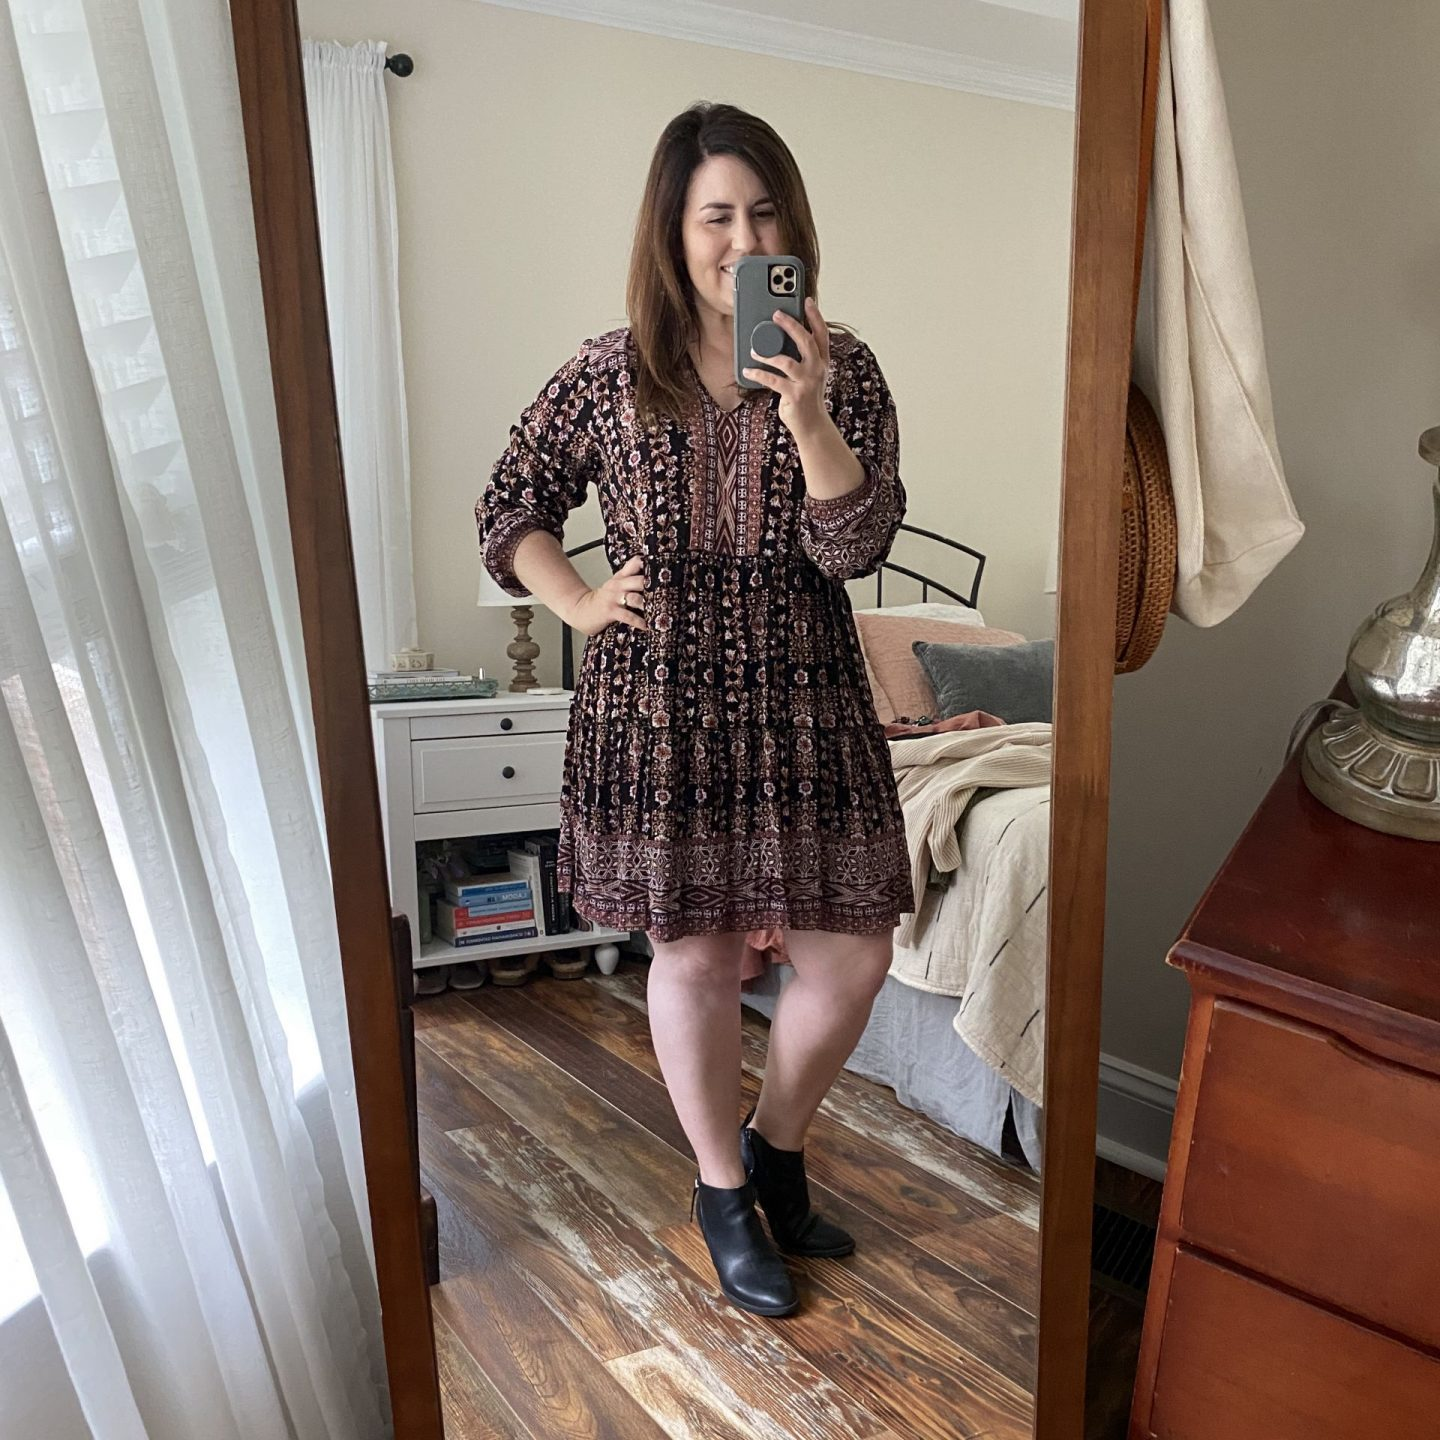 NC blogger Rebecca Lately is sharing her picks from the Fall Target dresses line up, along with some fall cardigans for layering.